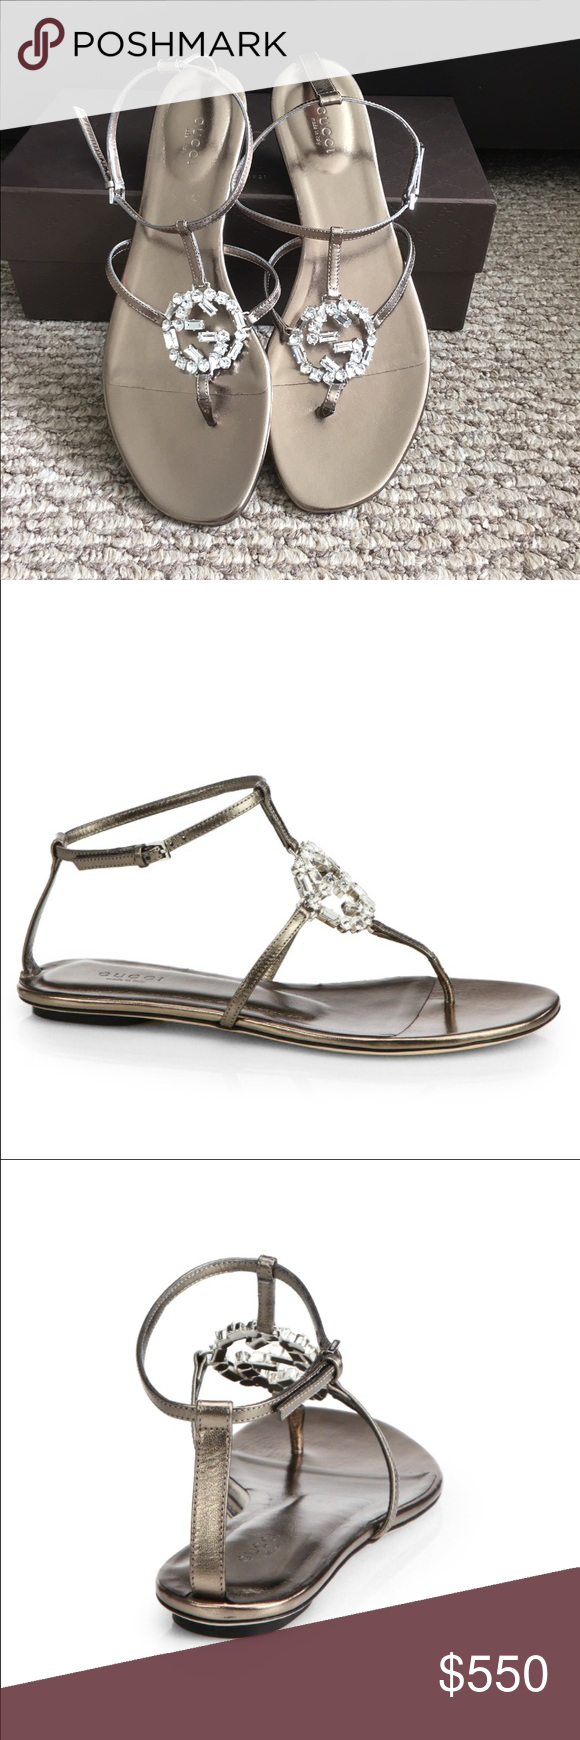 Gucci GG Crystal Sandals in Gunmetal Gucci GG Crystal T strap Sandals Size 11 in Gunmetal. A barely there sandal in sultry leather sandals flaunts a crystallized logo for unmistakable elegance. Adjustable strap with buckle closure. Leather upper/leather lining and sole. By Gucci; made in Italy. Gucci Shoes Sandals